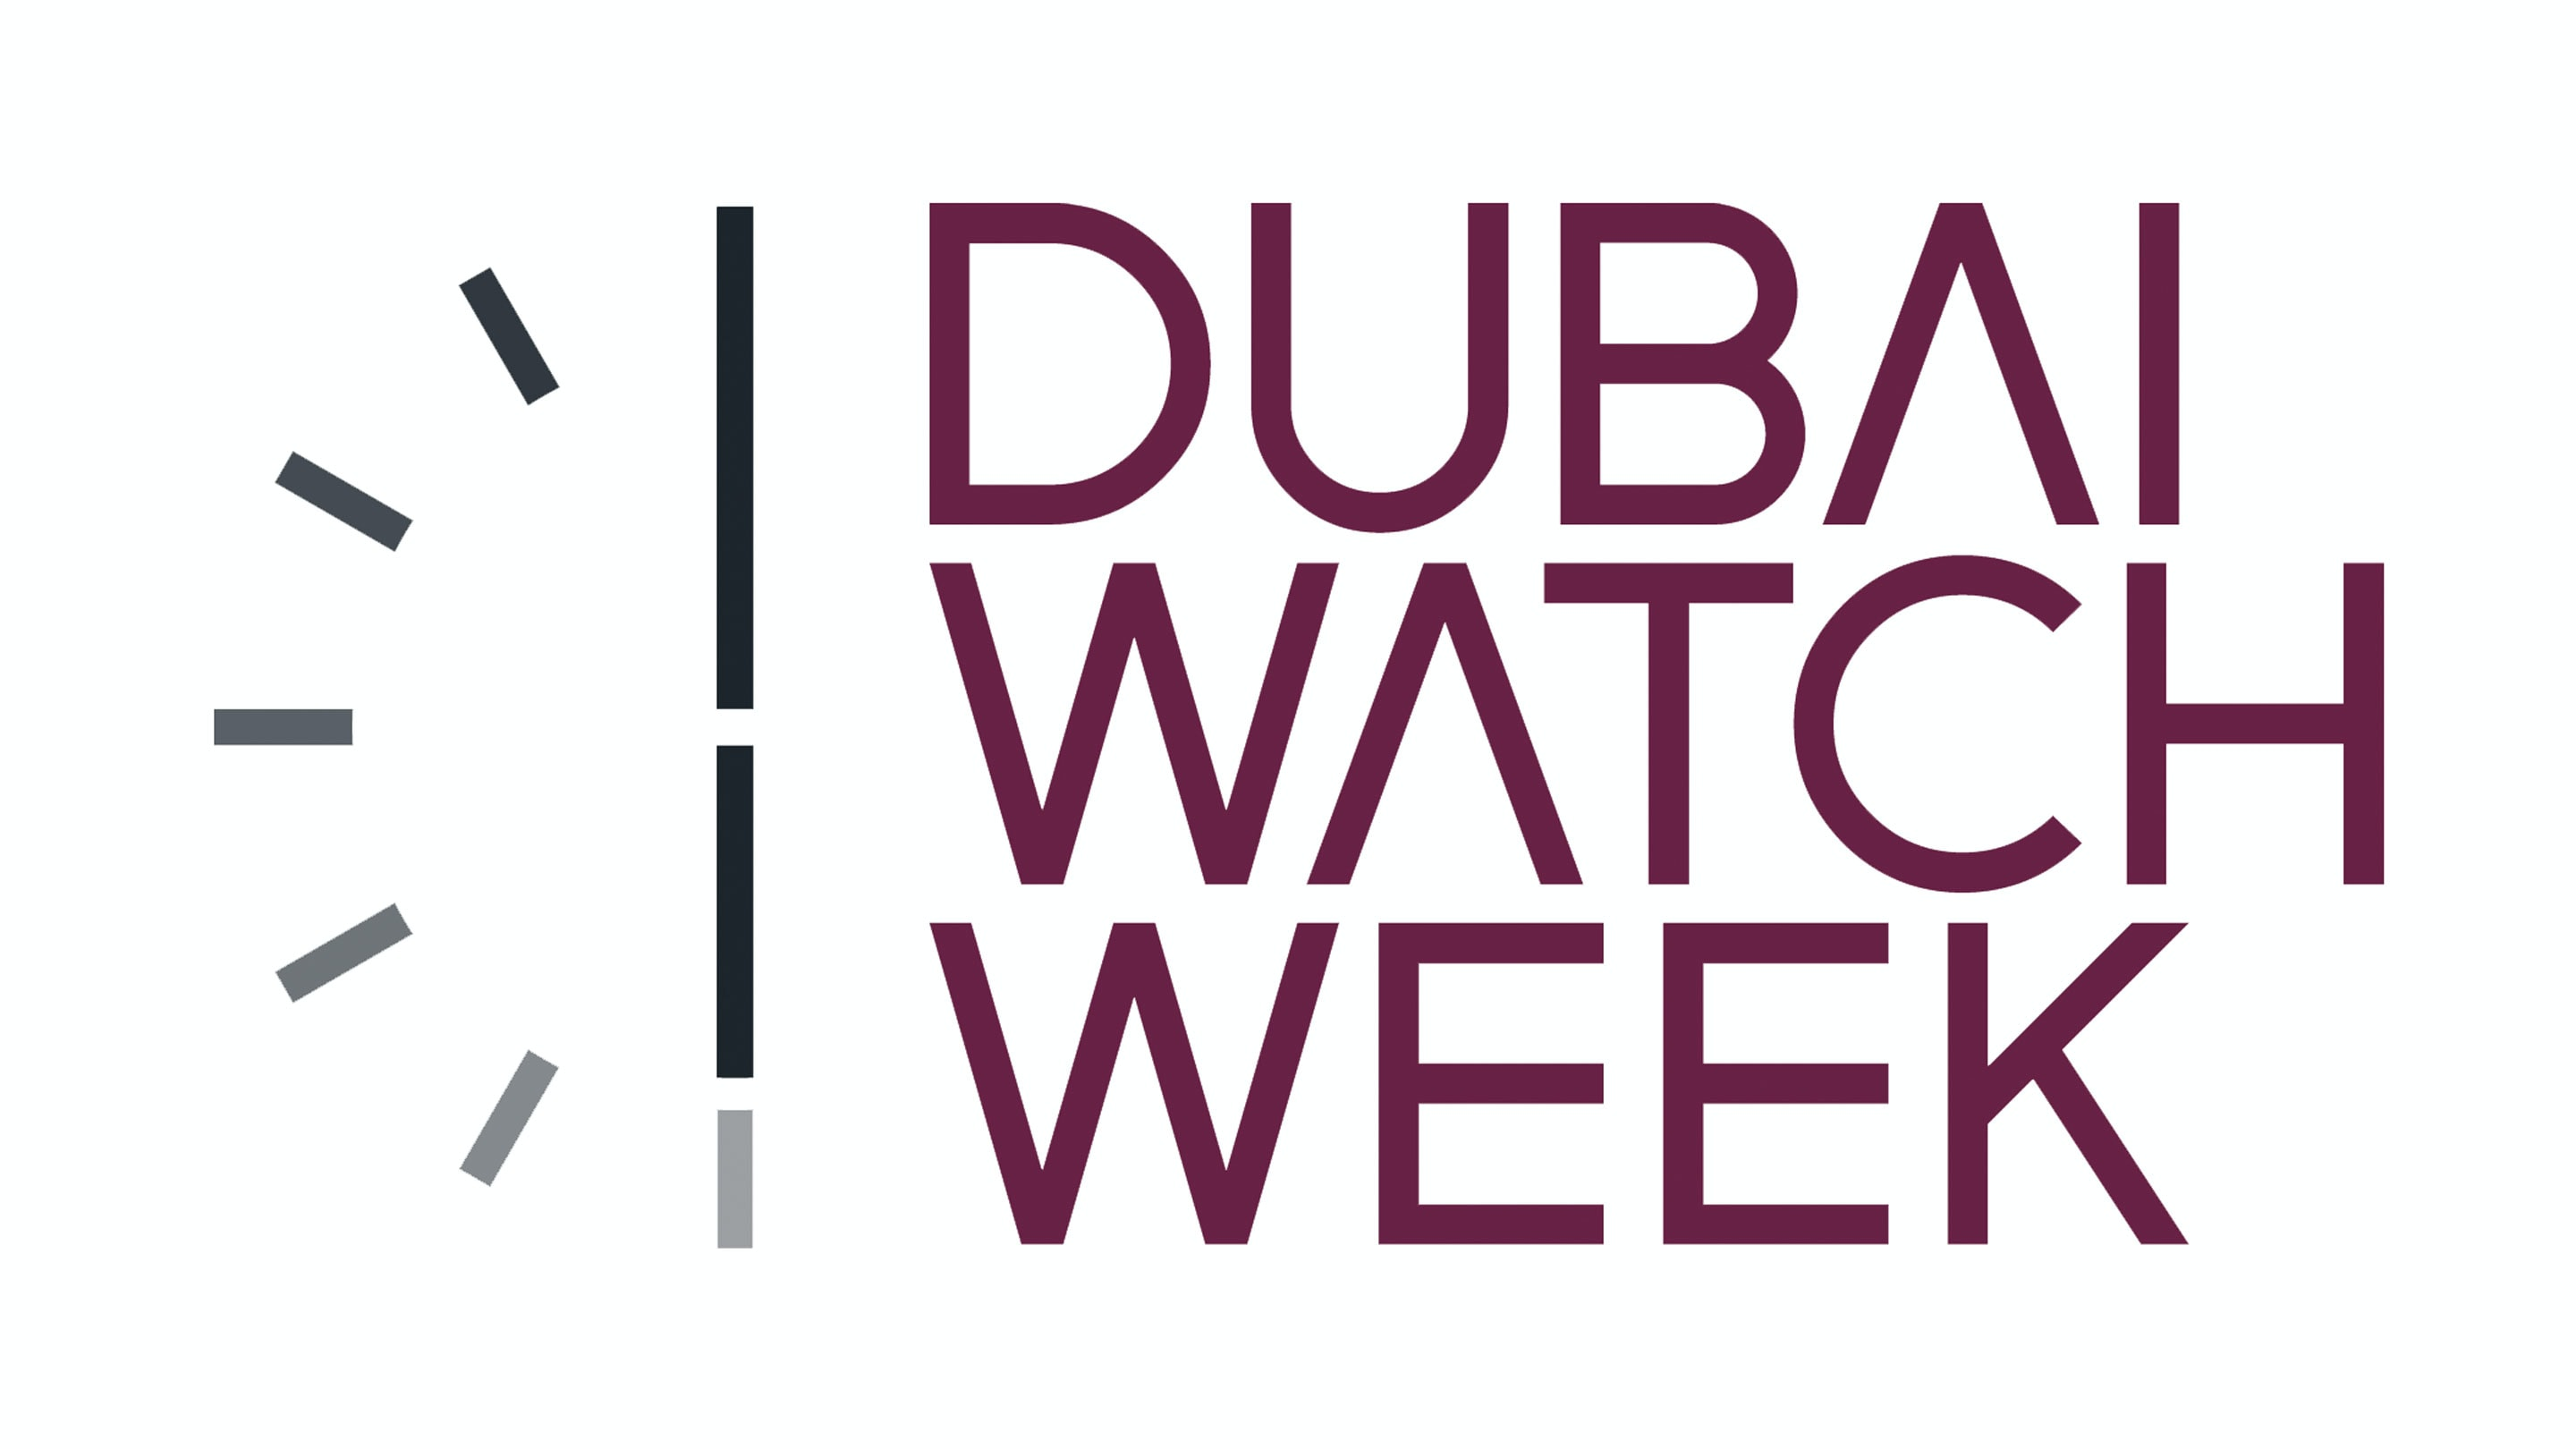 Dww.jpg?ixlib=rails 1.1 Happenings: Join HODINKEE At Dubai Watch Week 2017 Happenings: Join HODINKEE At Dubai Watch Week 2017 dww